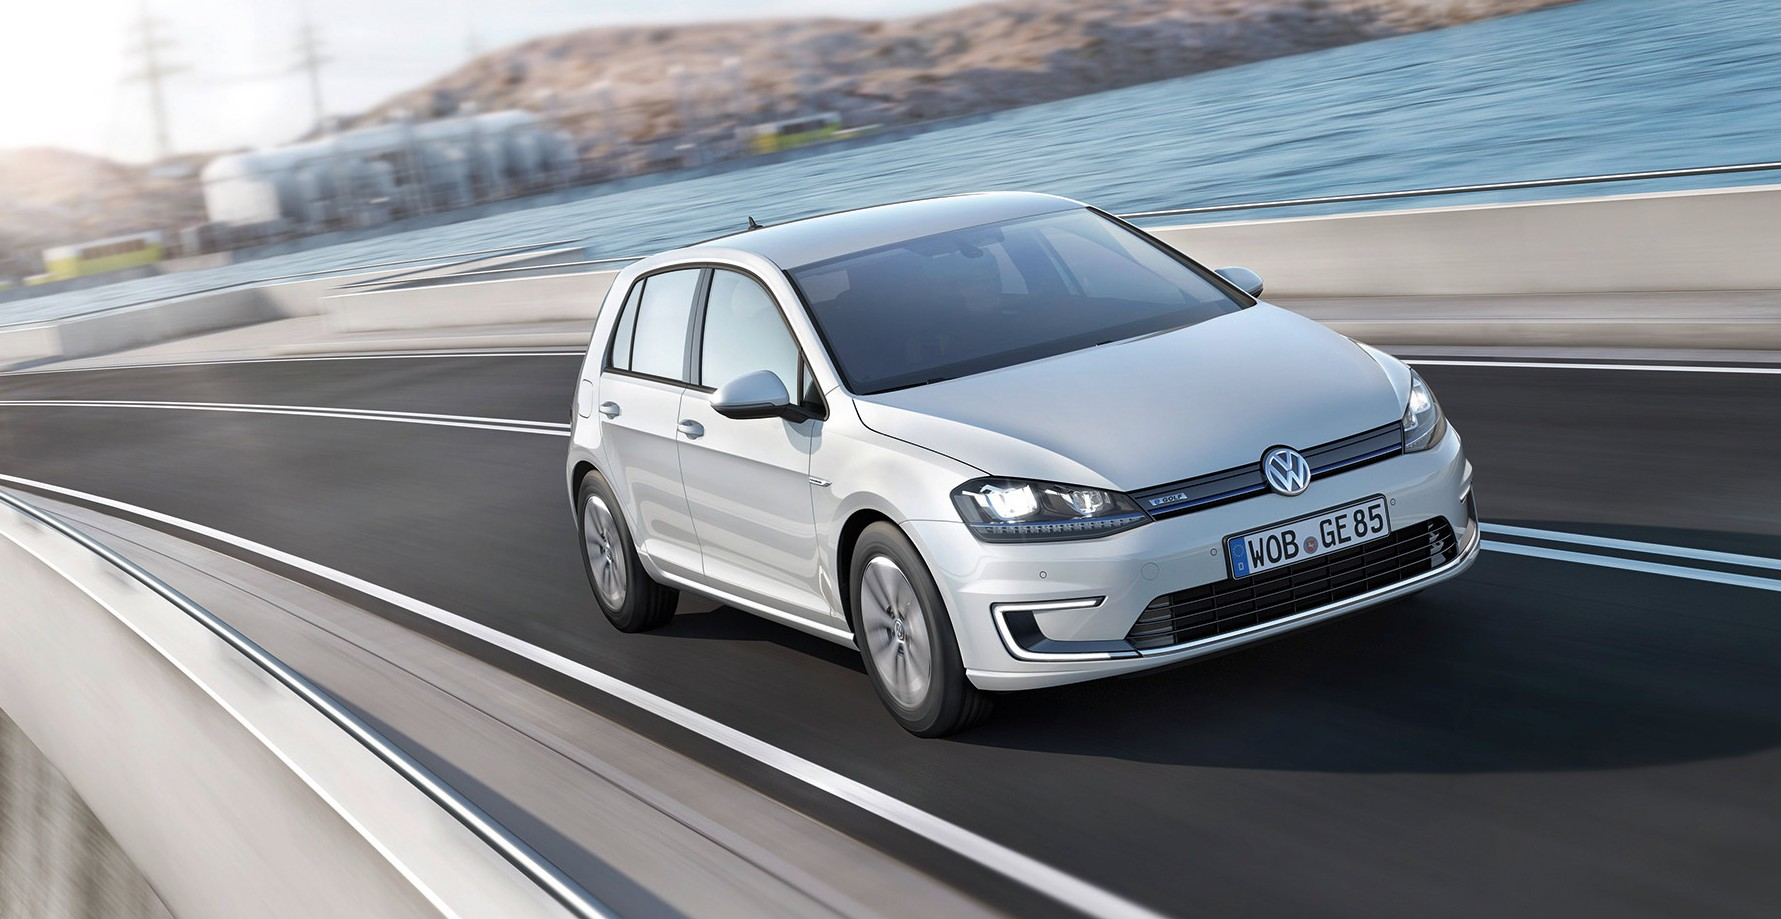 volkswagen-e-golf-014